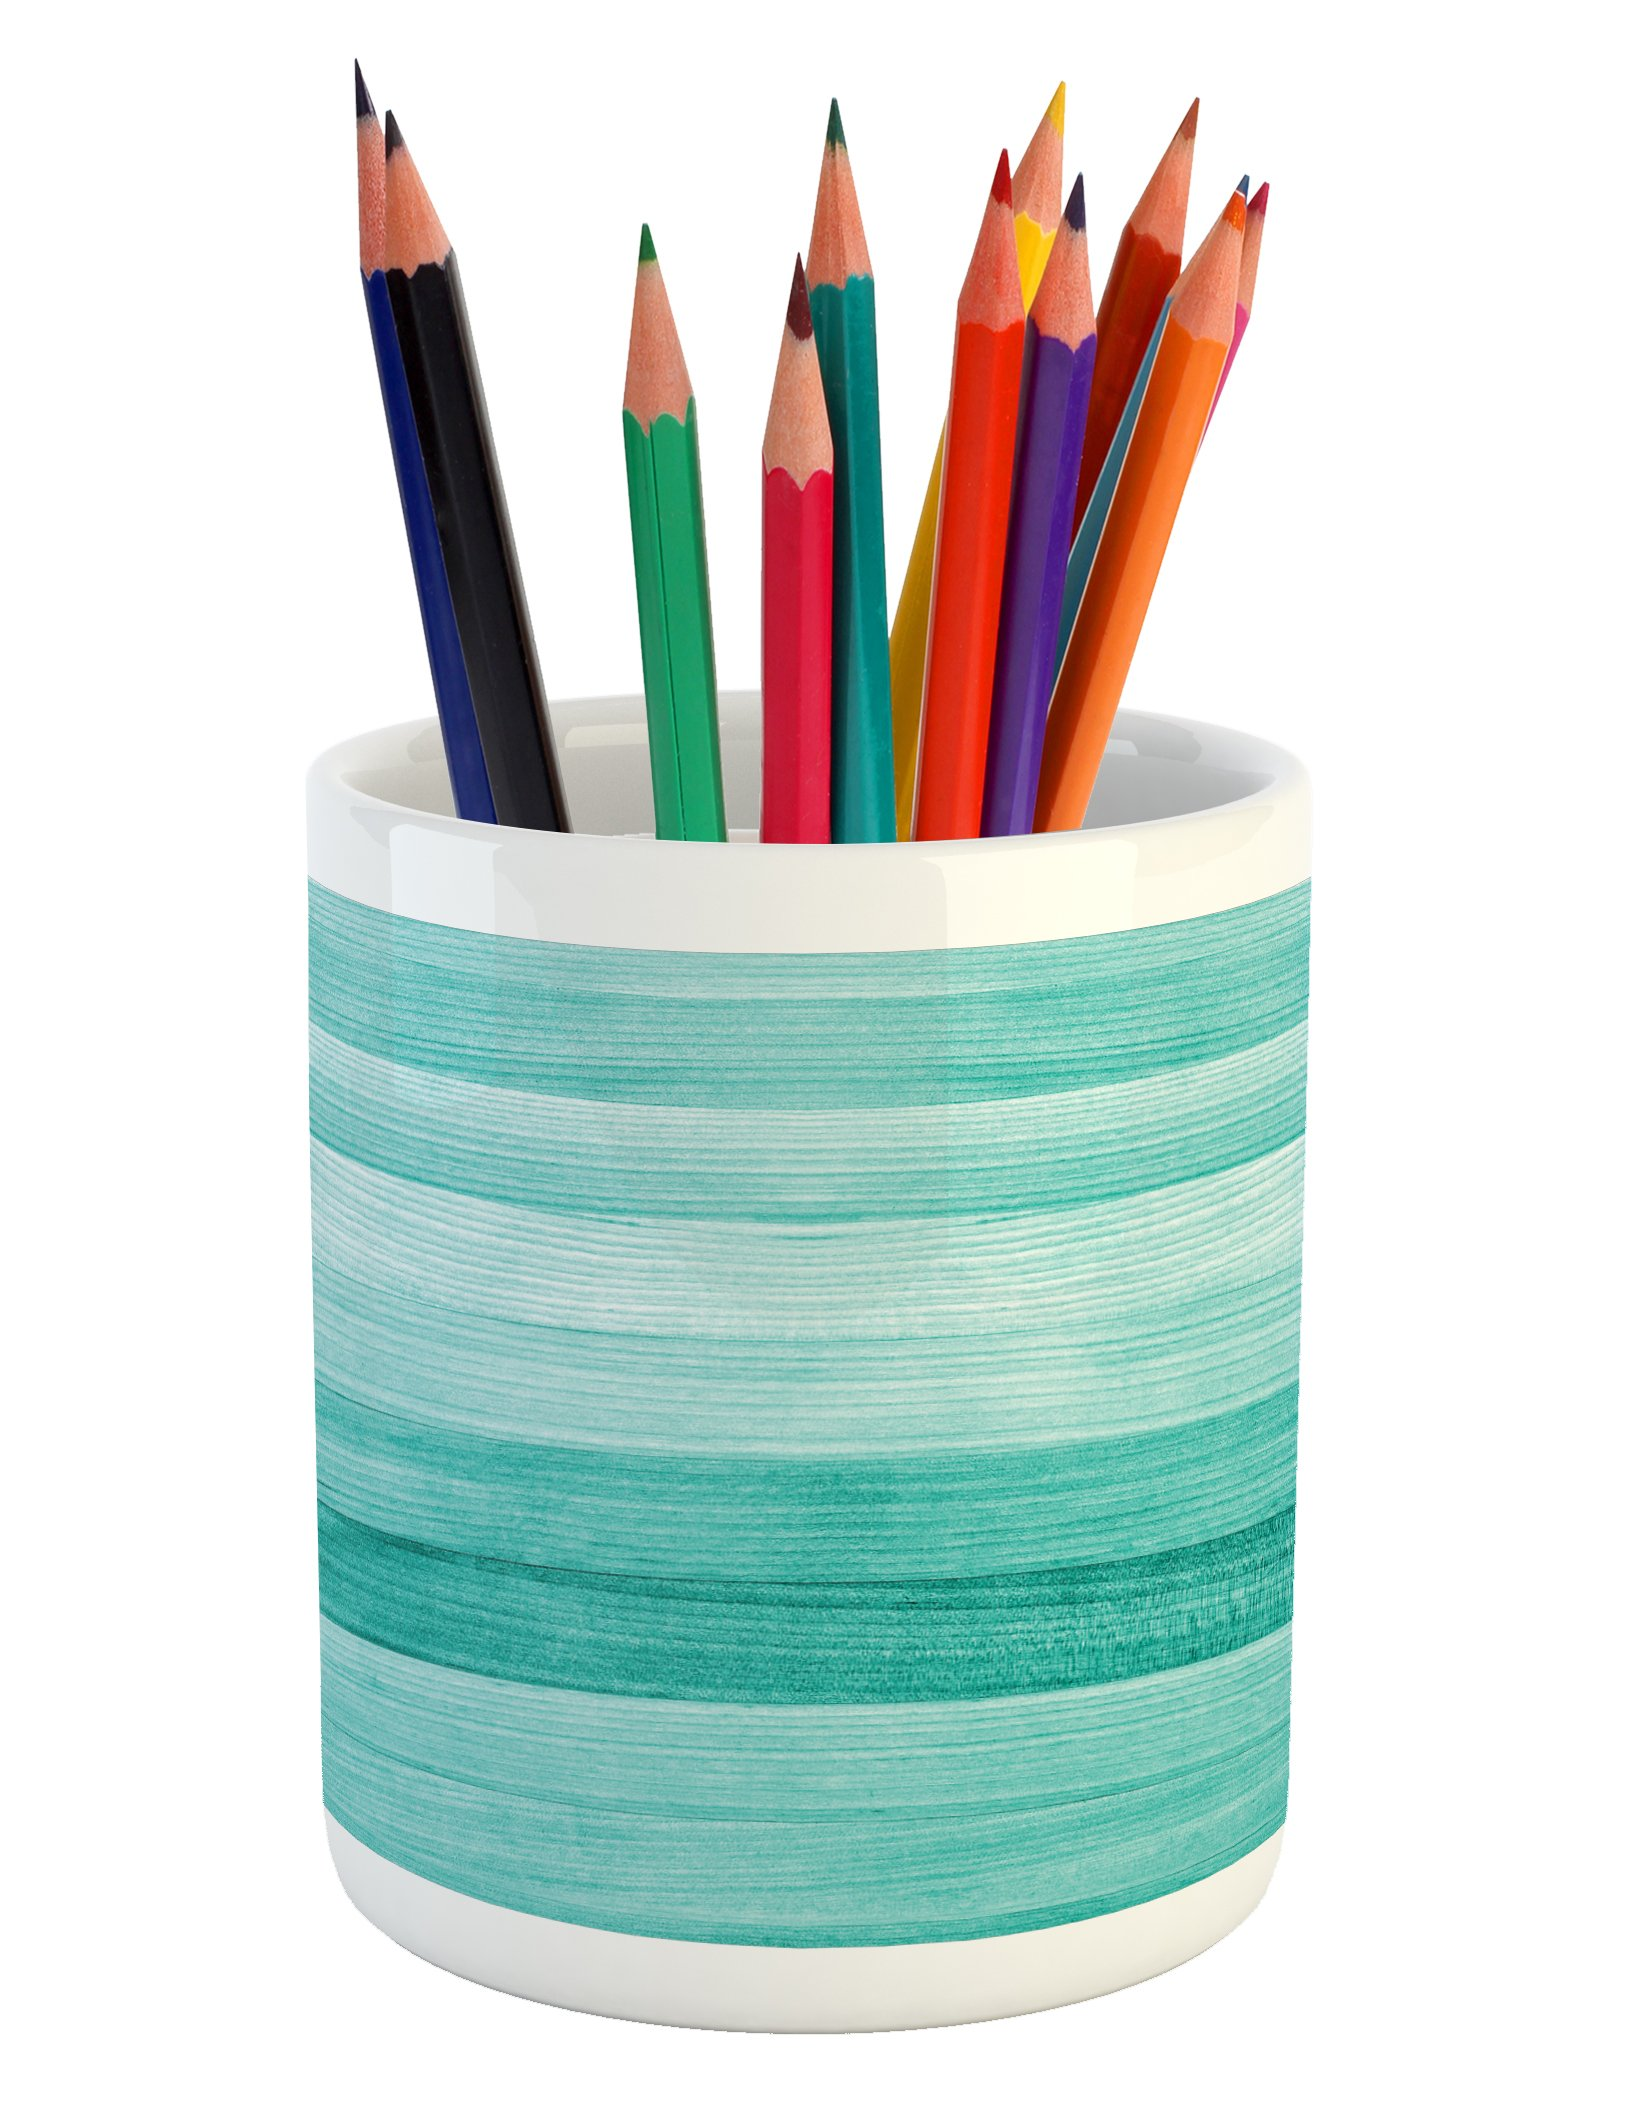 Ambesonne Teal Pencil Pen Holder, Painted Wood Board with Horizontal Lines Birthdays Easter Holiday Print Backdrop Image, Printed Ceramic Pencil Pen Holder for Desk Office Accessory, Turquoise